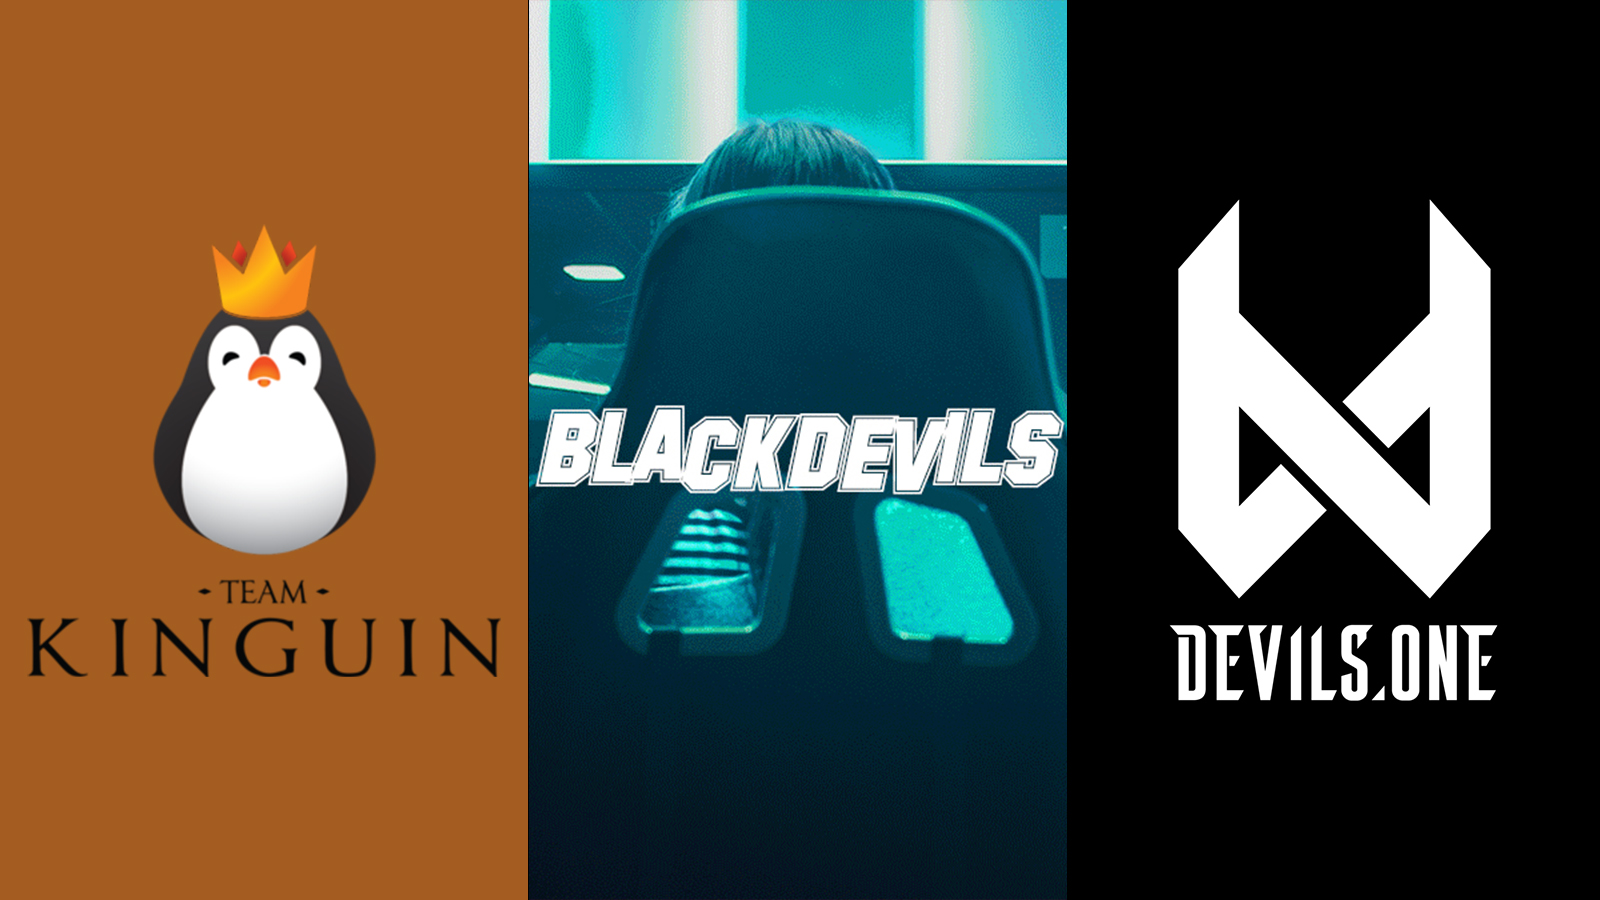 Kinguin Black Devils Rebrand